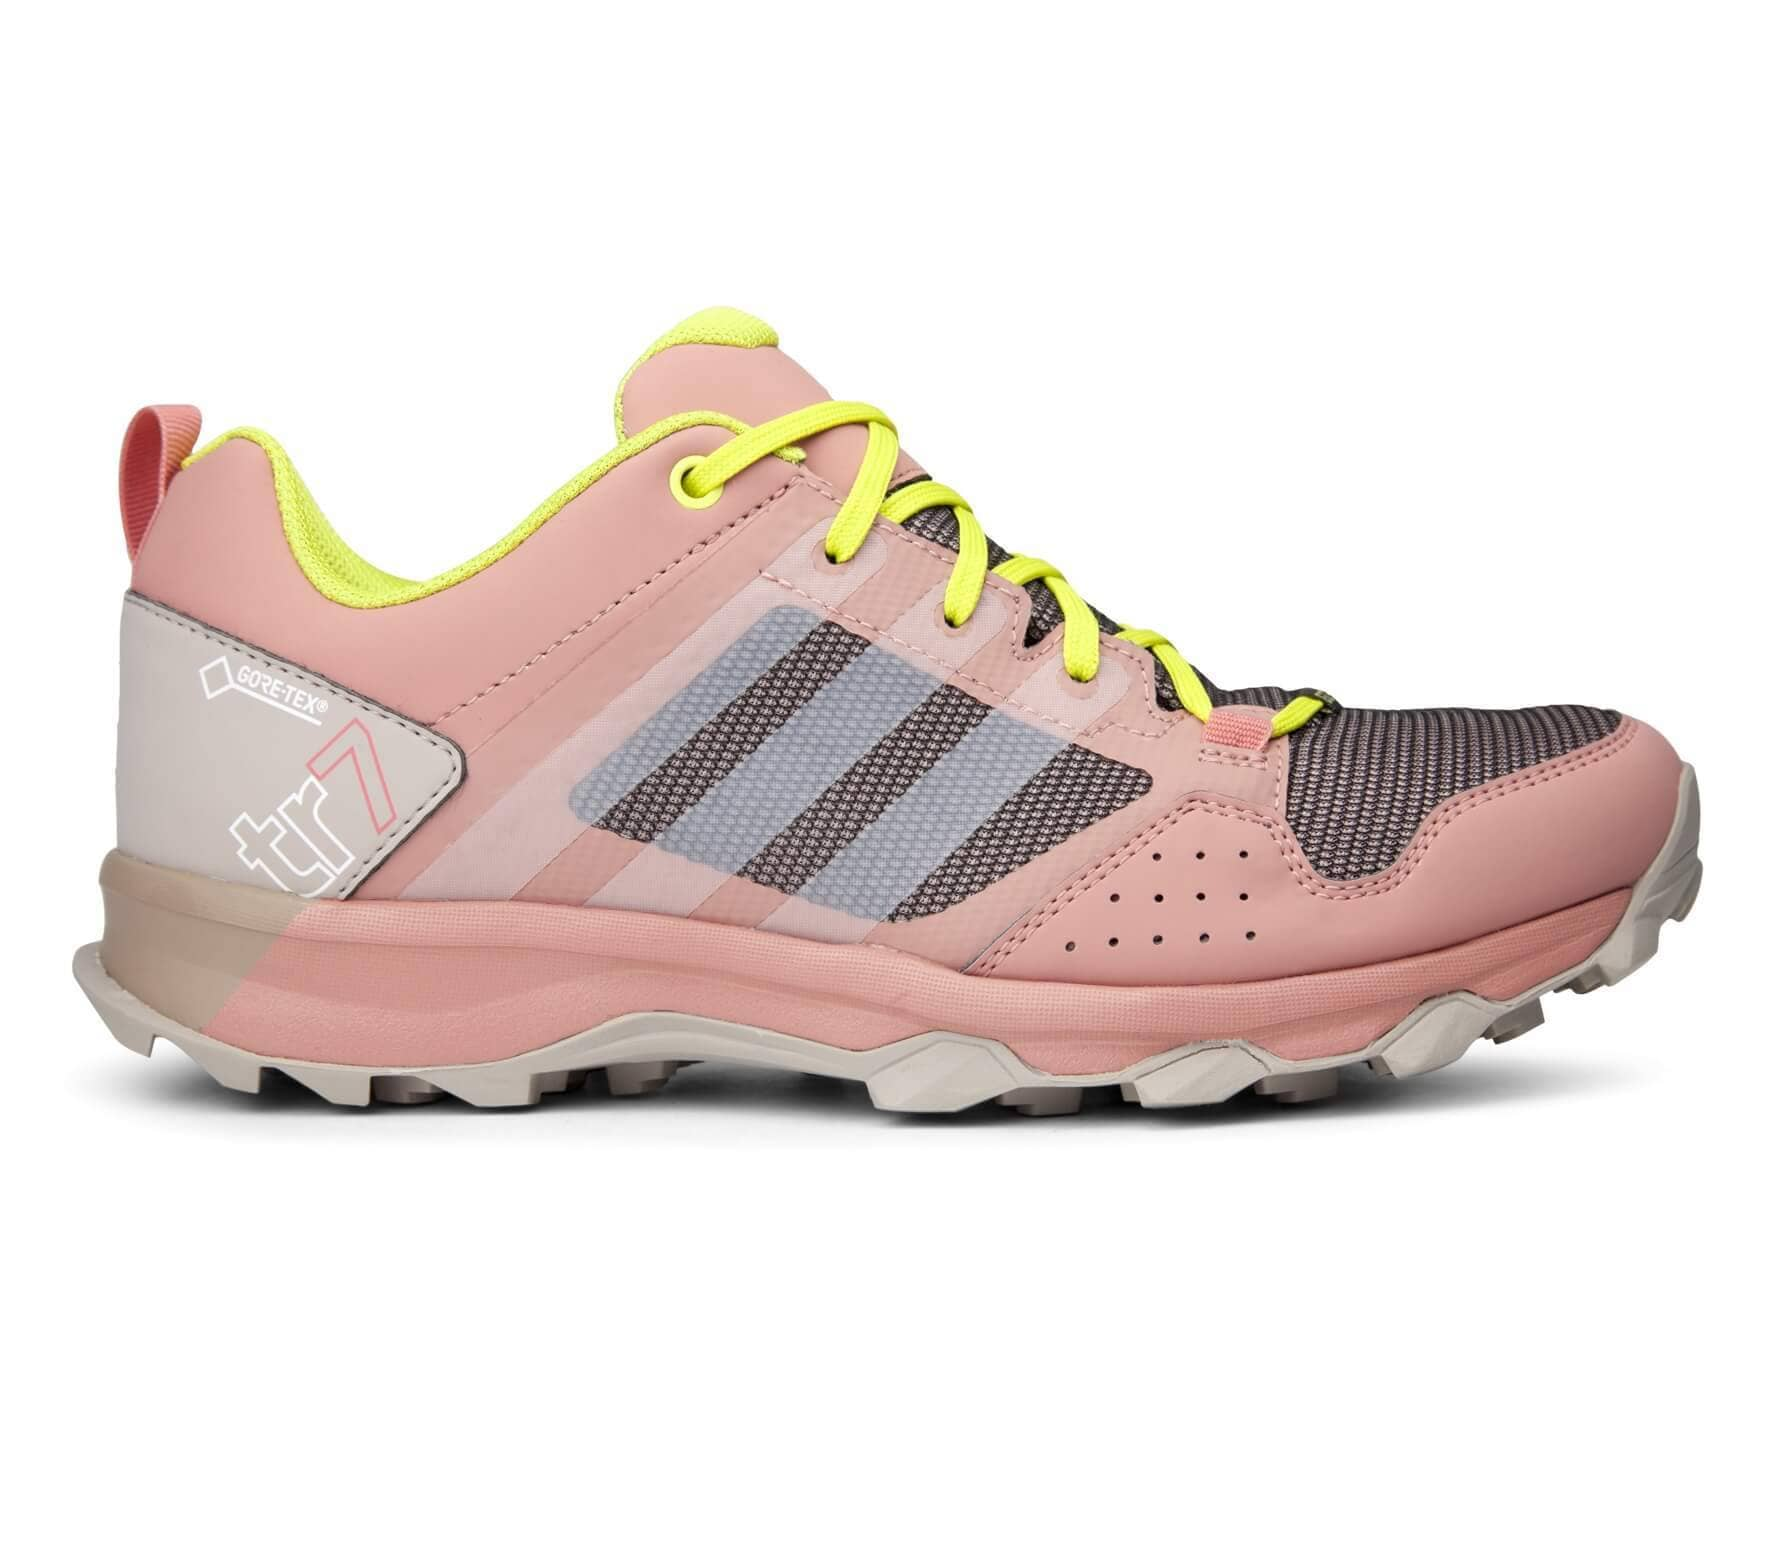 Adidas - Kanadia 7 TR GTX women s running shoes (brown grey) - buy ... b186a5f63